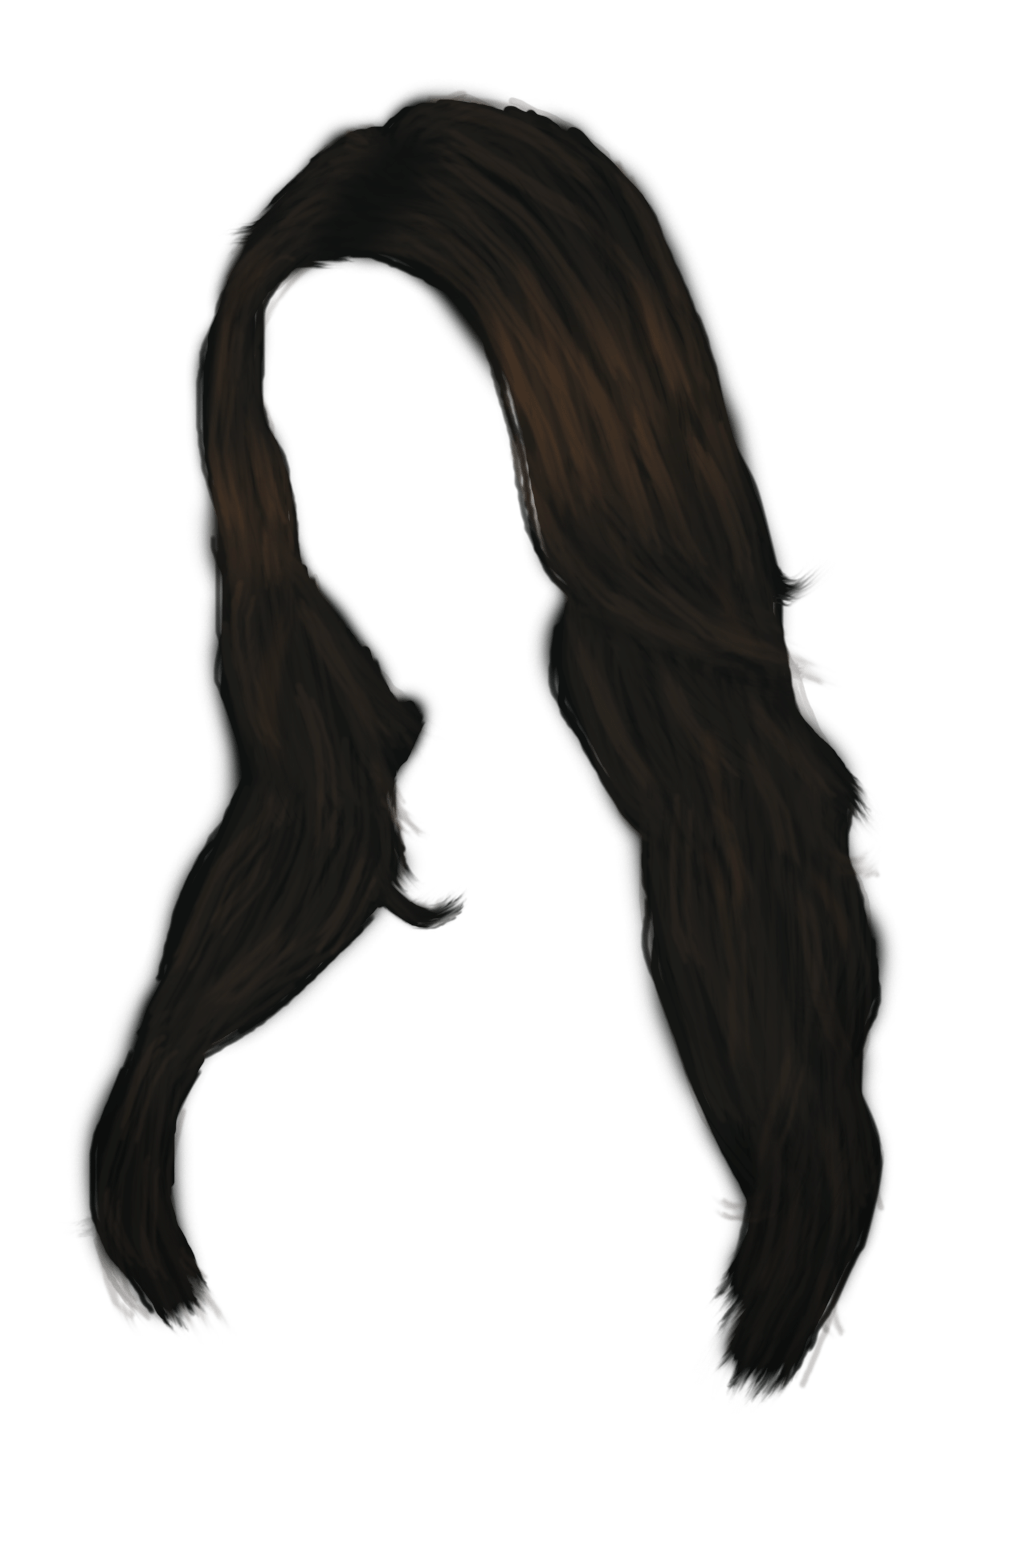 Long hair png. Black women transparent stickpng